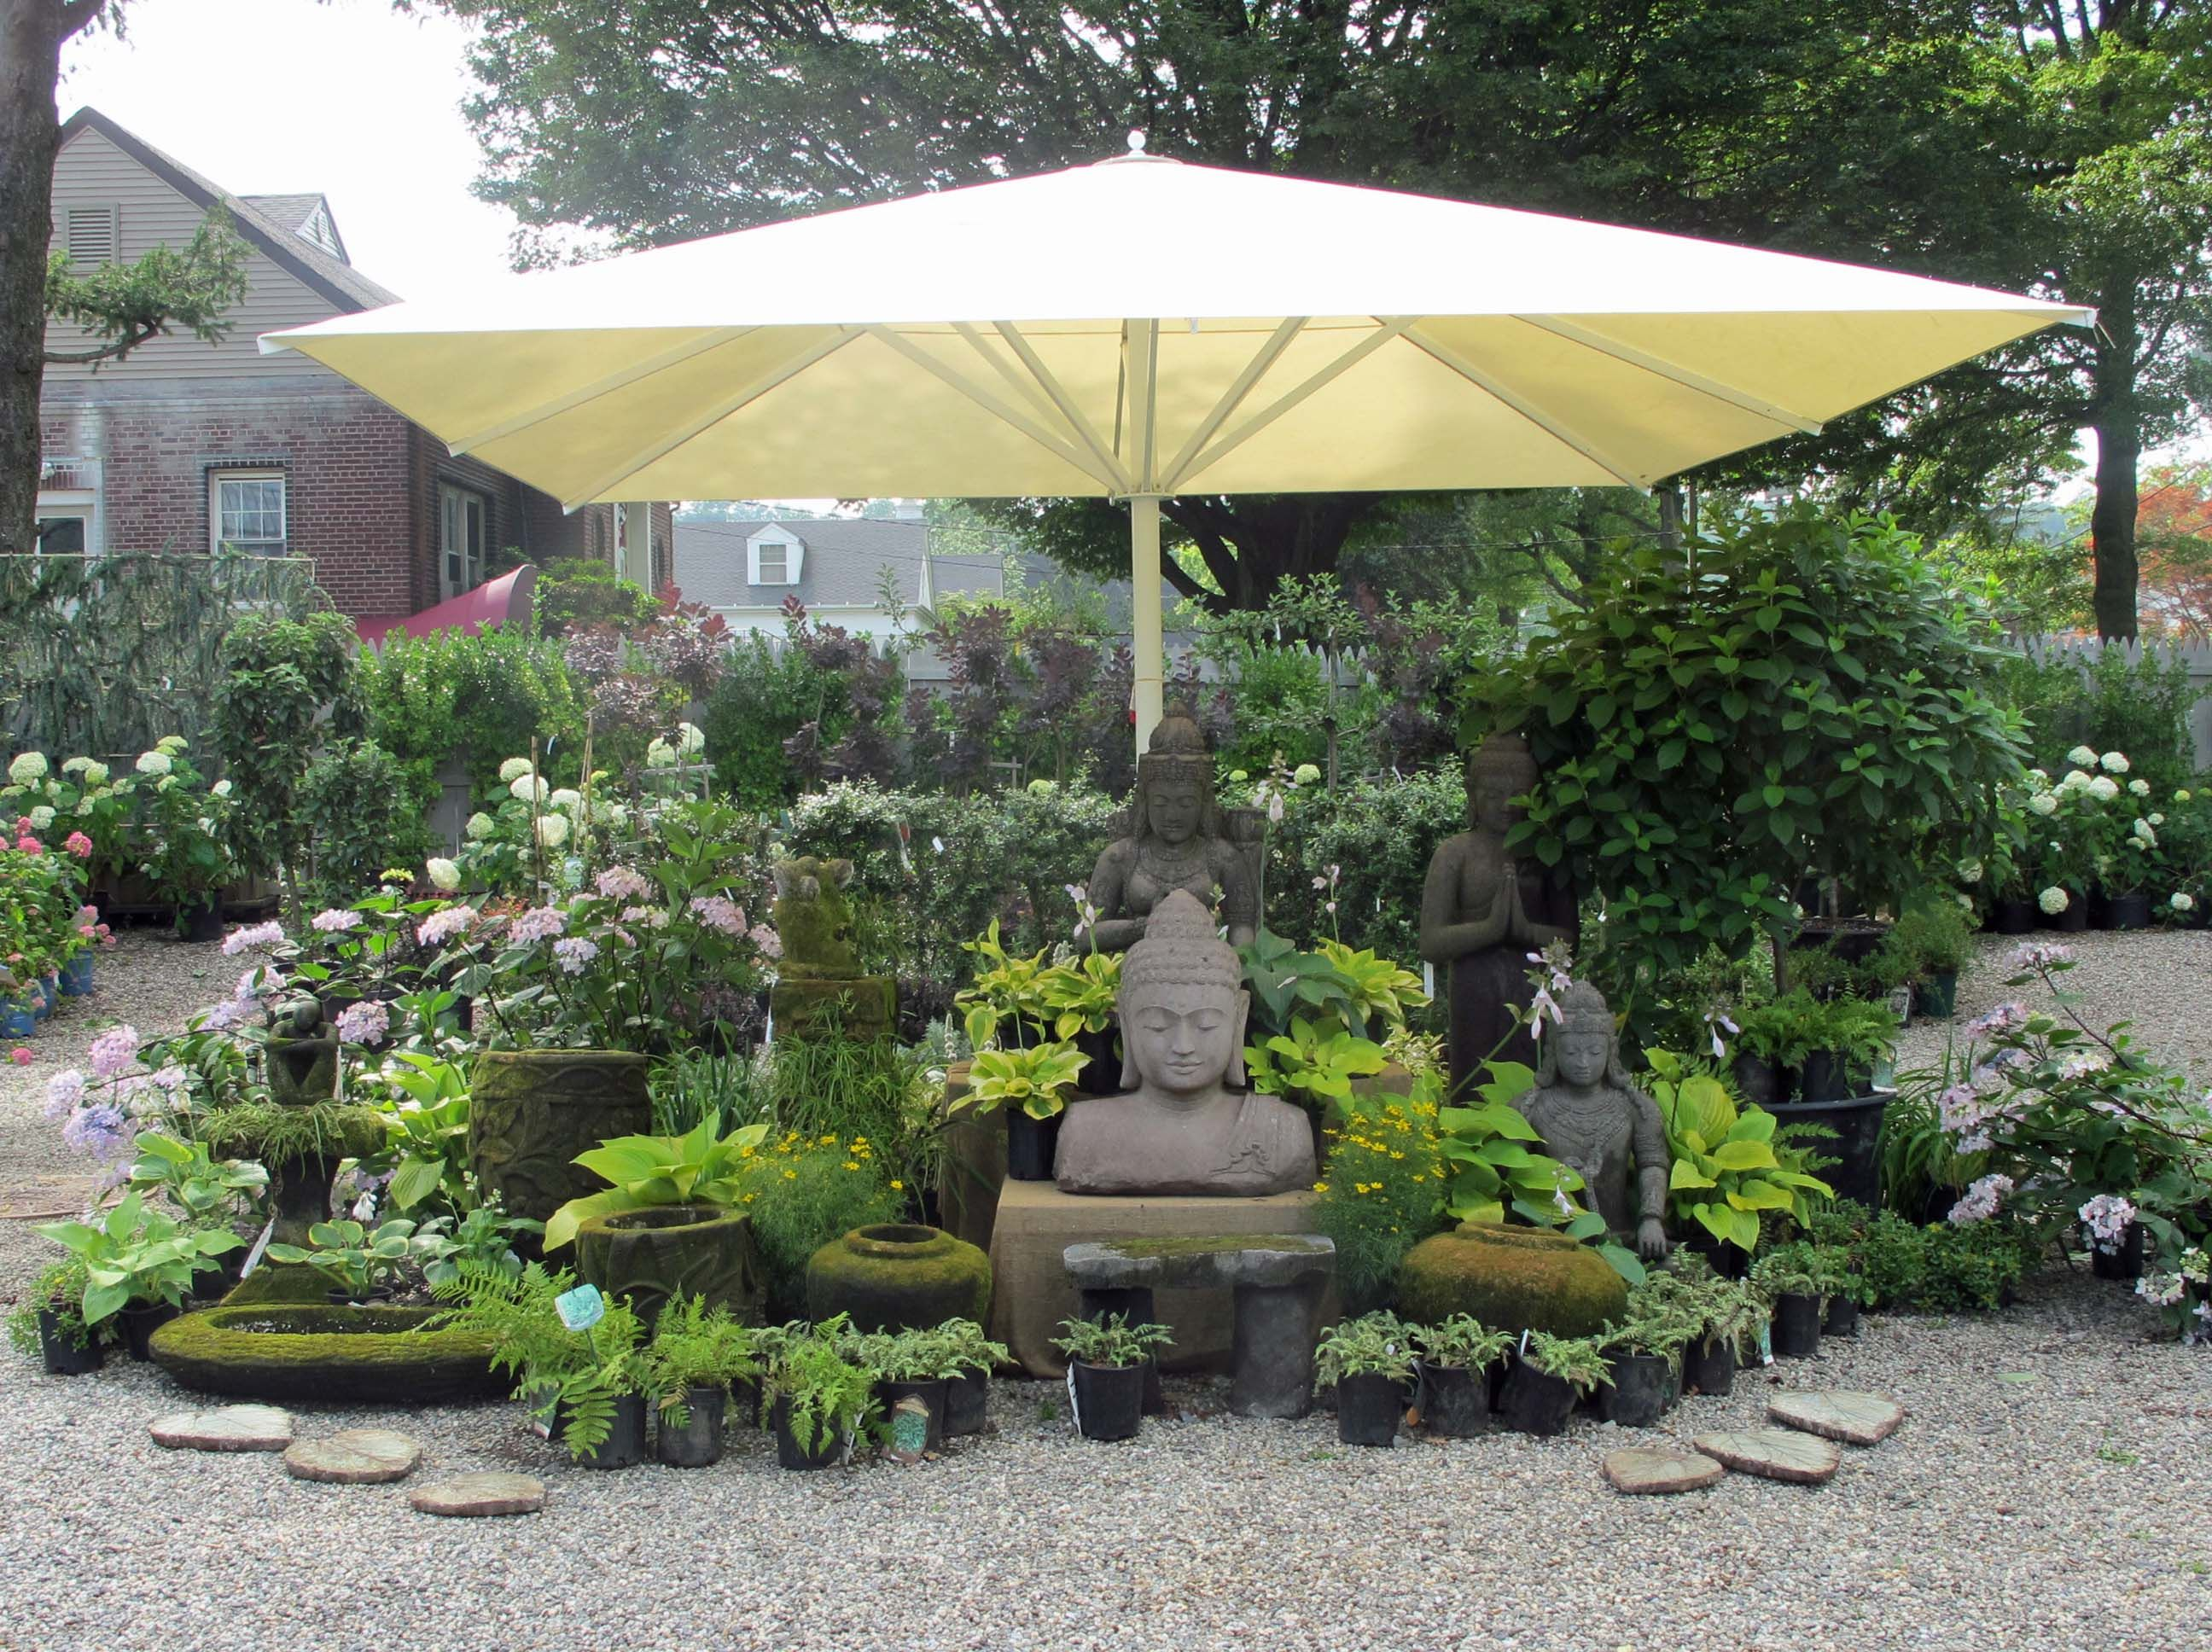 The 25 Best Ideas About Garden Center Displays On Pinterest